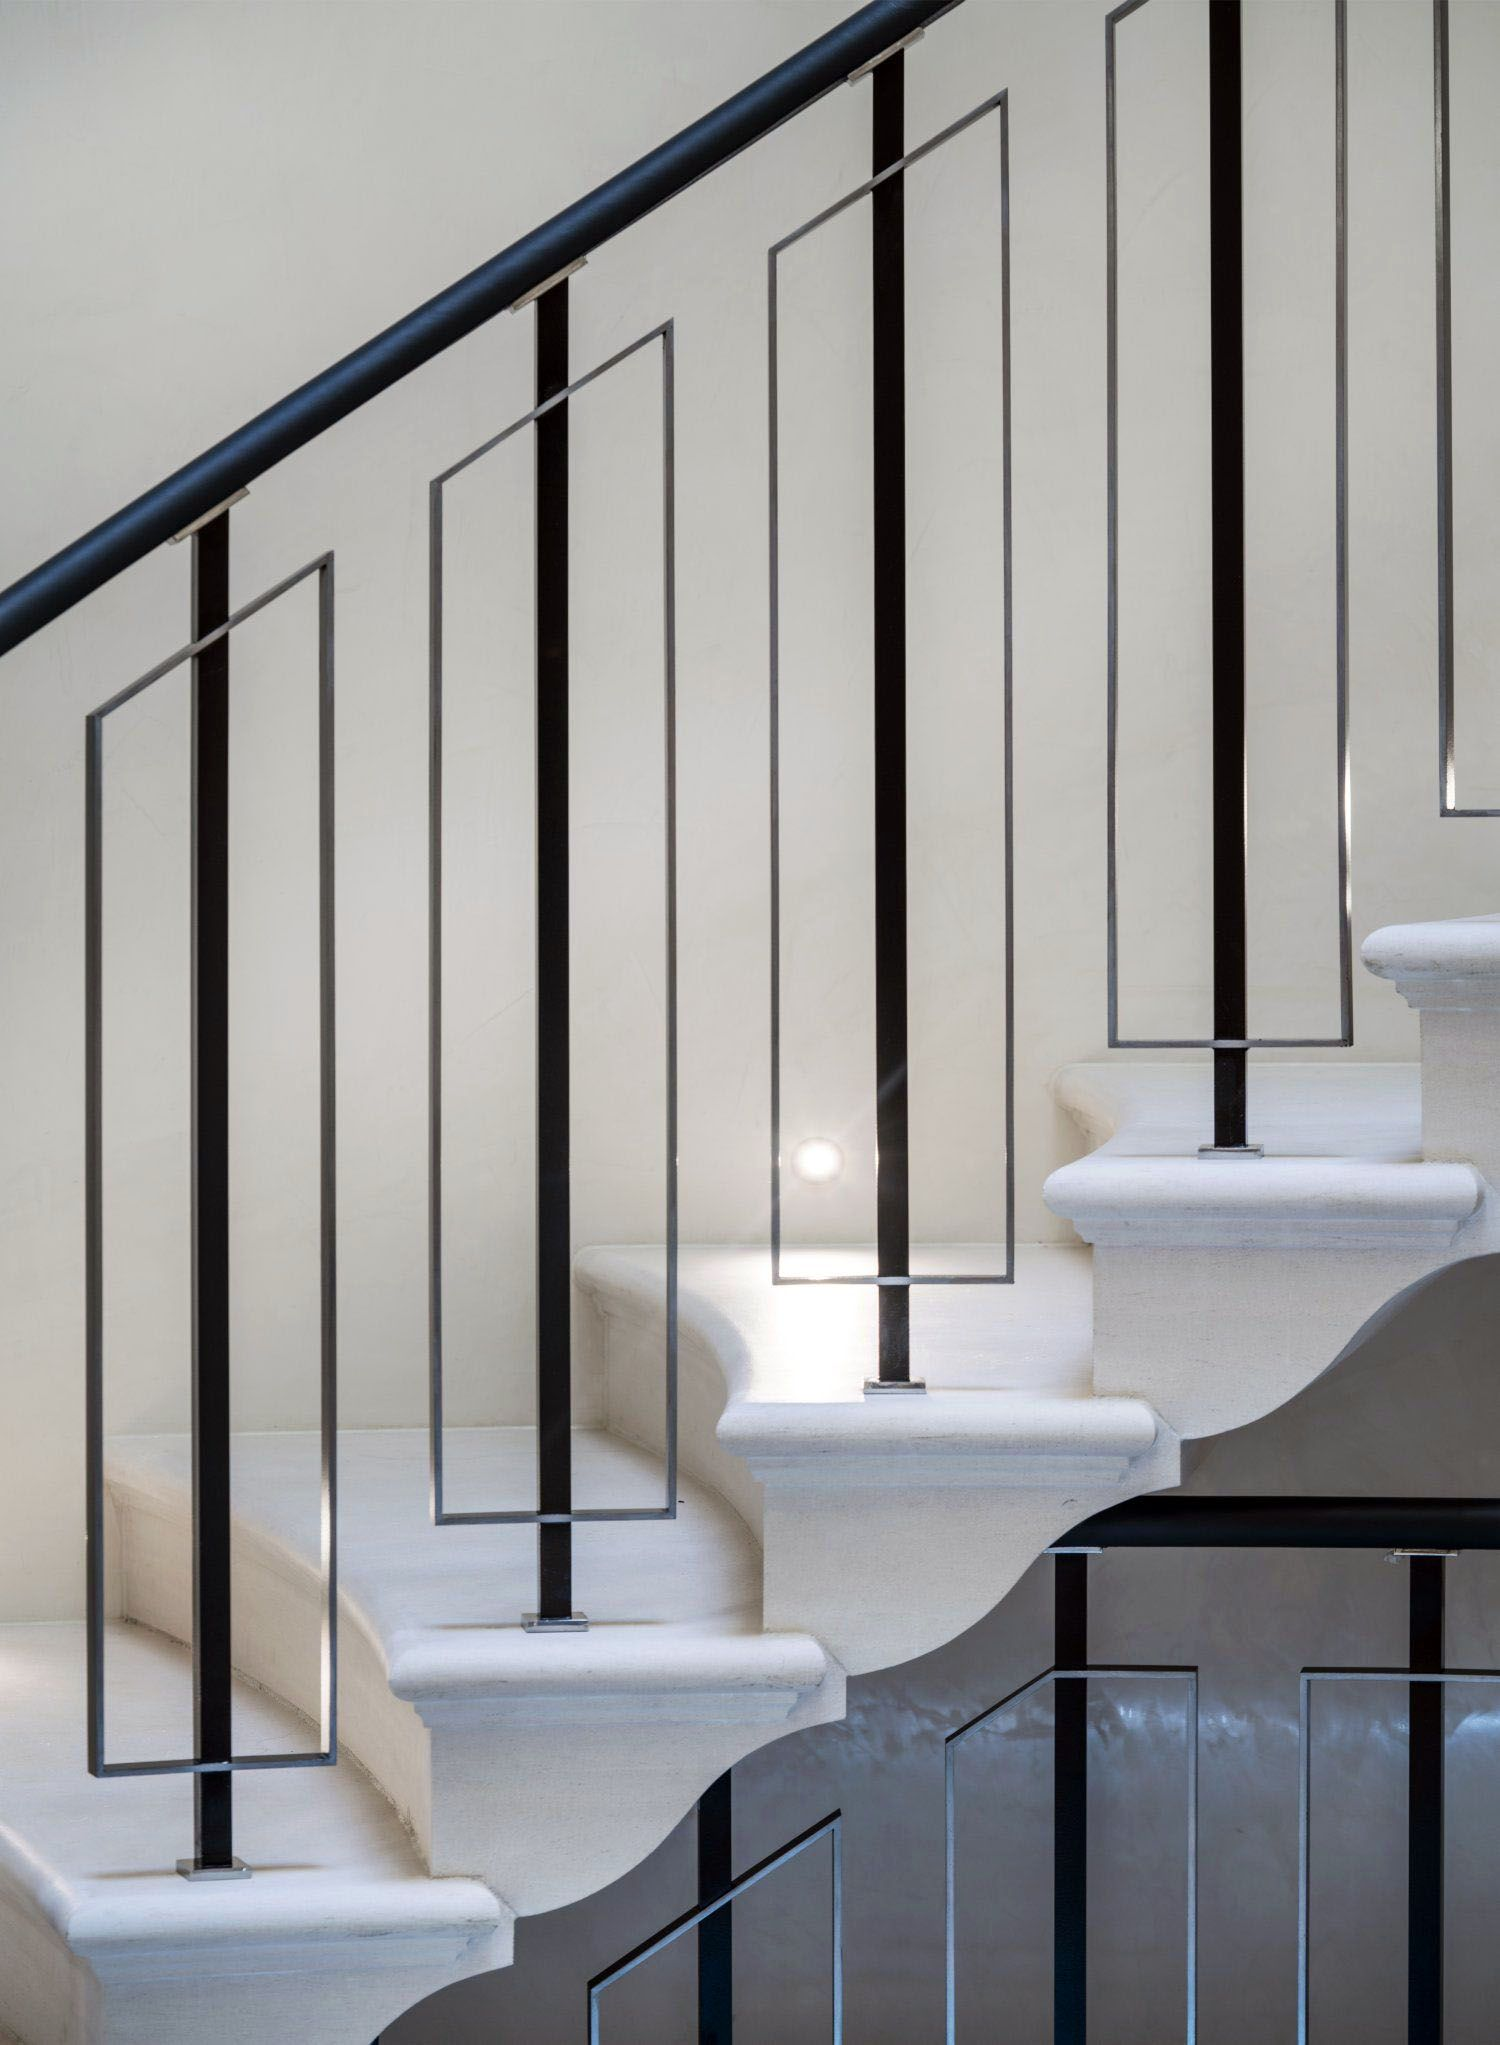 The Next Level 14 Stair Railings To Elevate Your Home Design Homes Tre Staircase Railing Design Stair Railing Design Interior Stairs